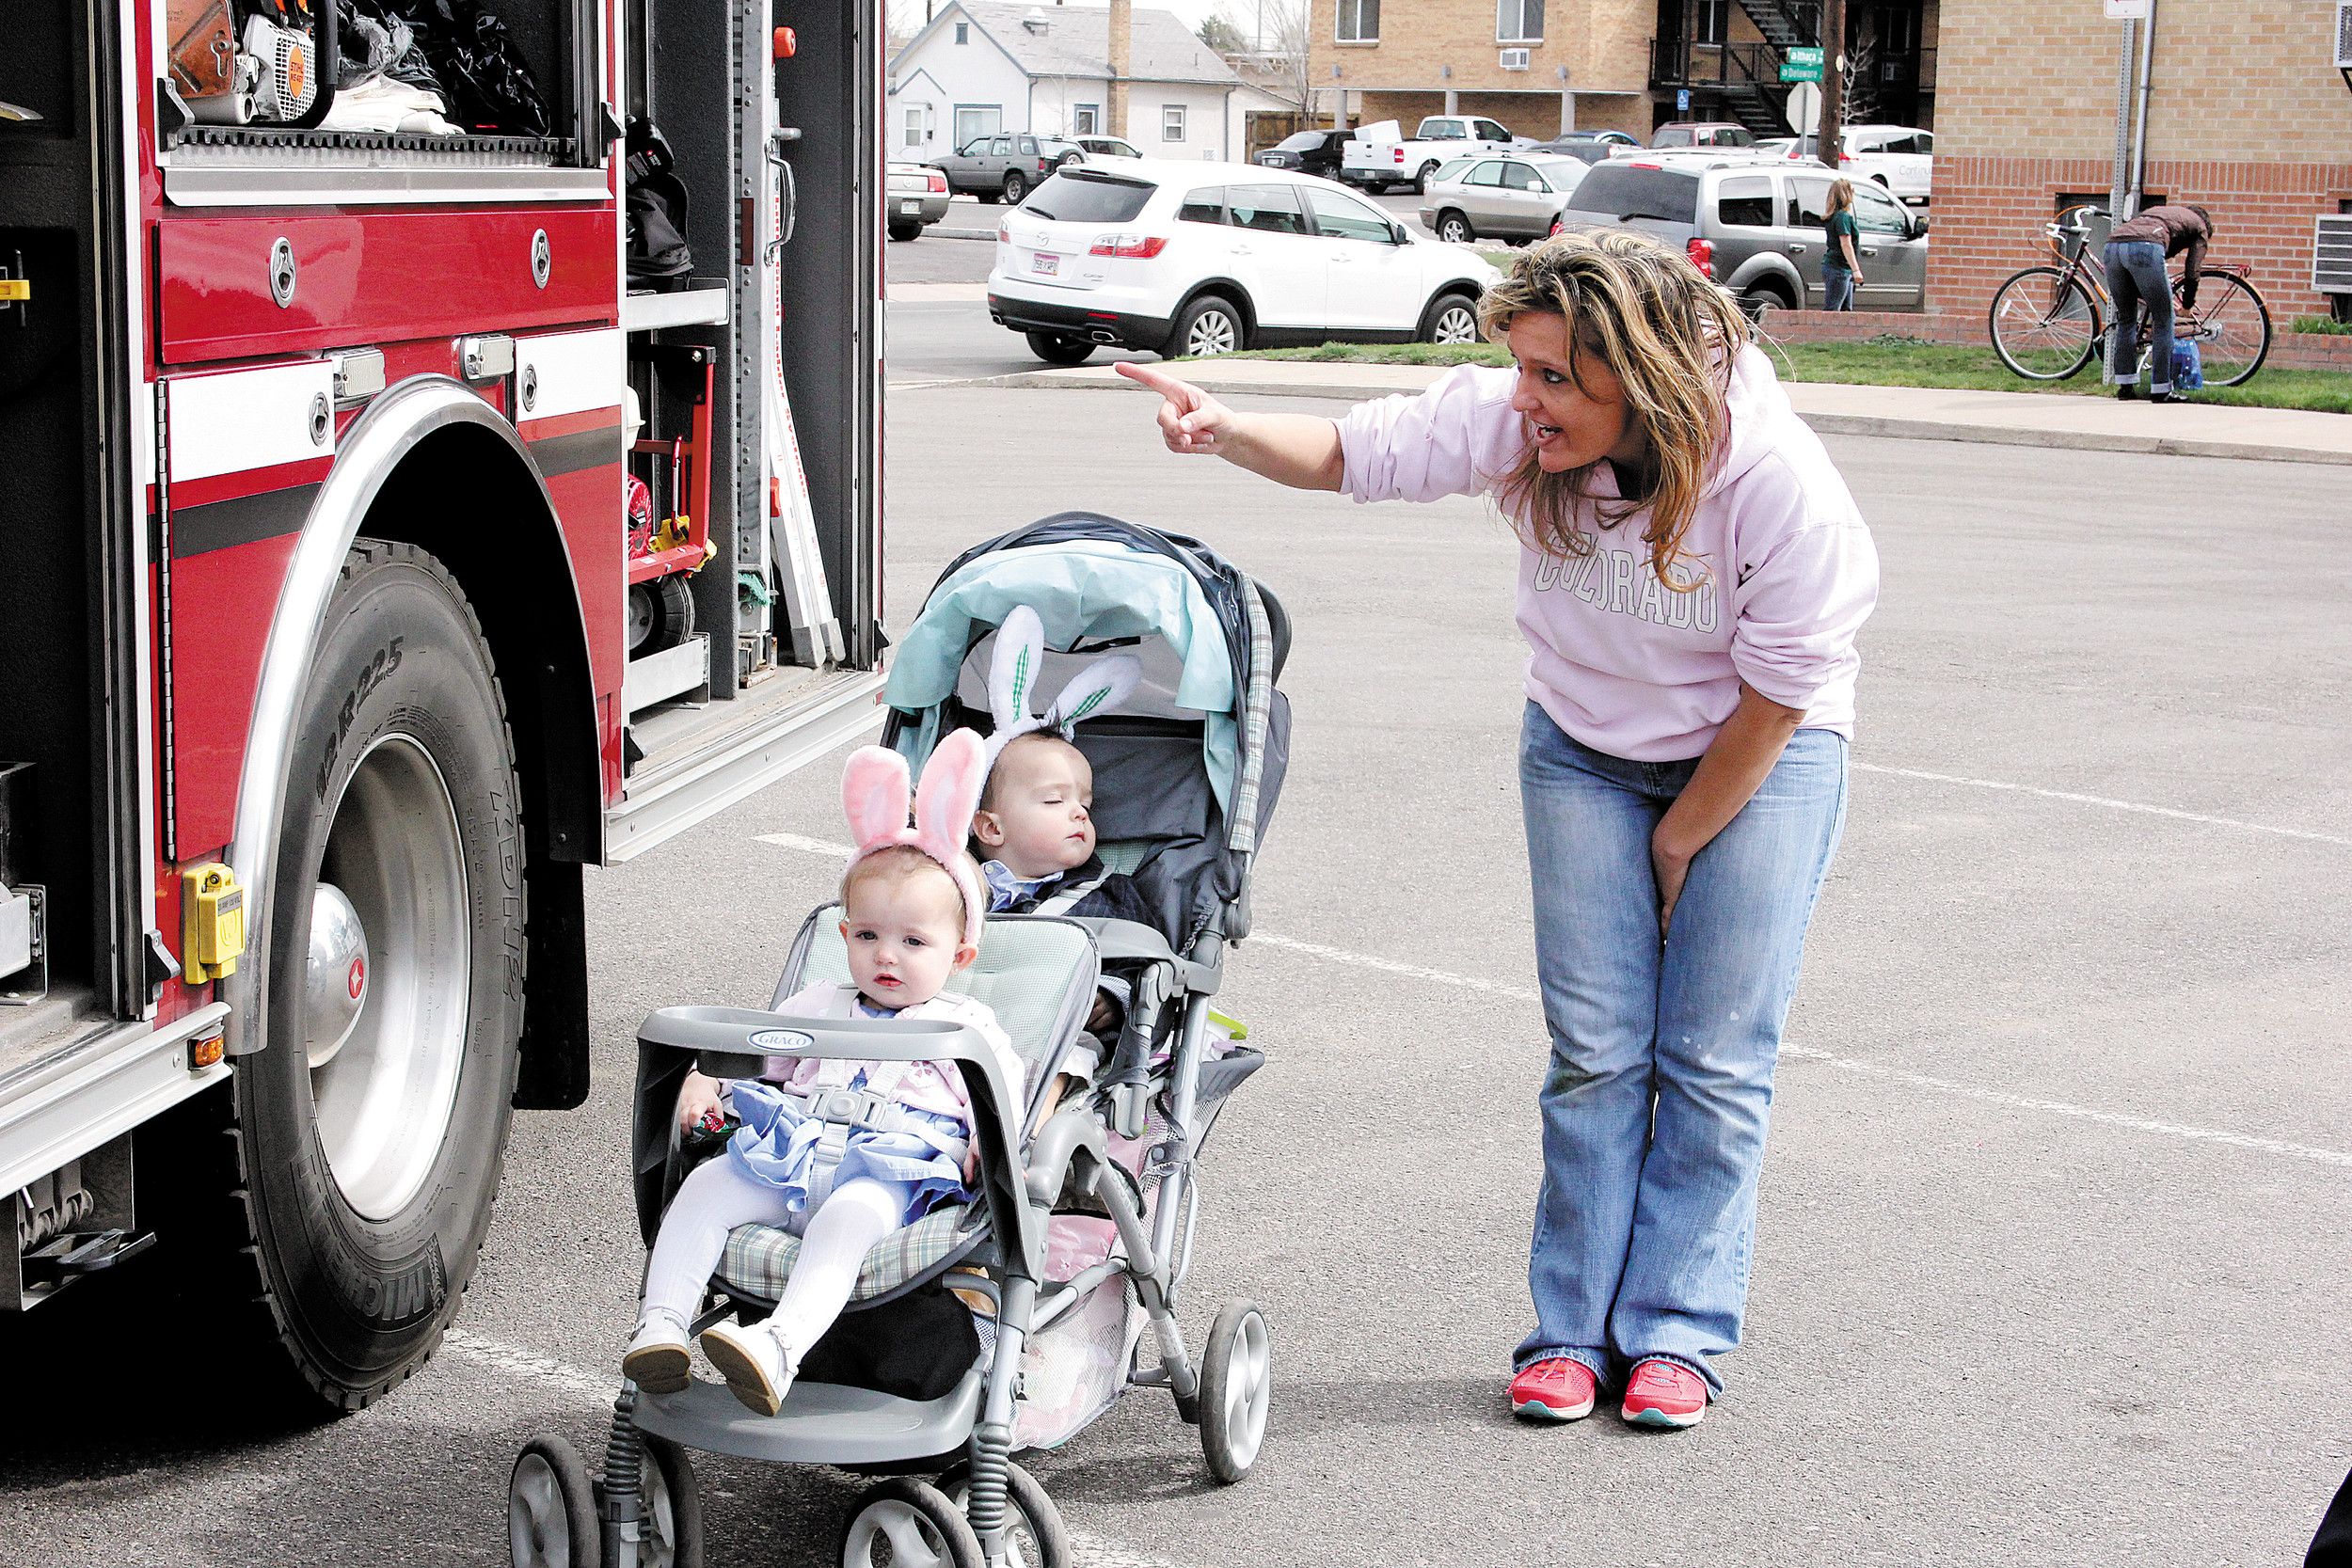 Tanya Ohlinger, right, points out the items in the fire truck to her twins Hayleigh, front, and Harley. The fire truck was on display during Englewood's April 12 Great Egg Scramble. Photo by Tom Munds